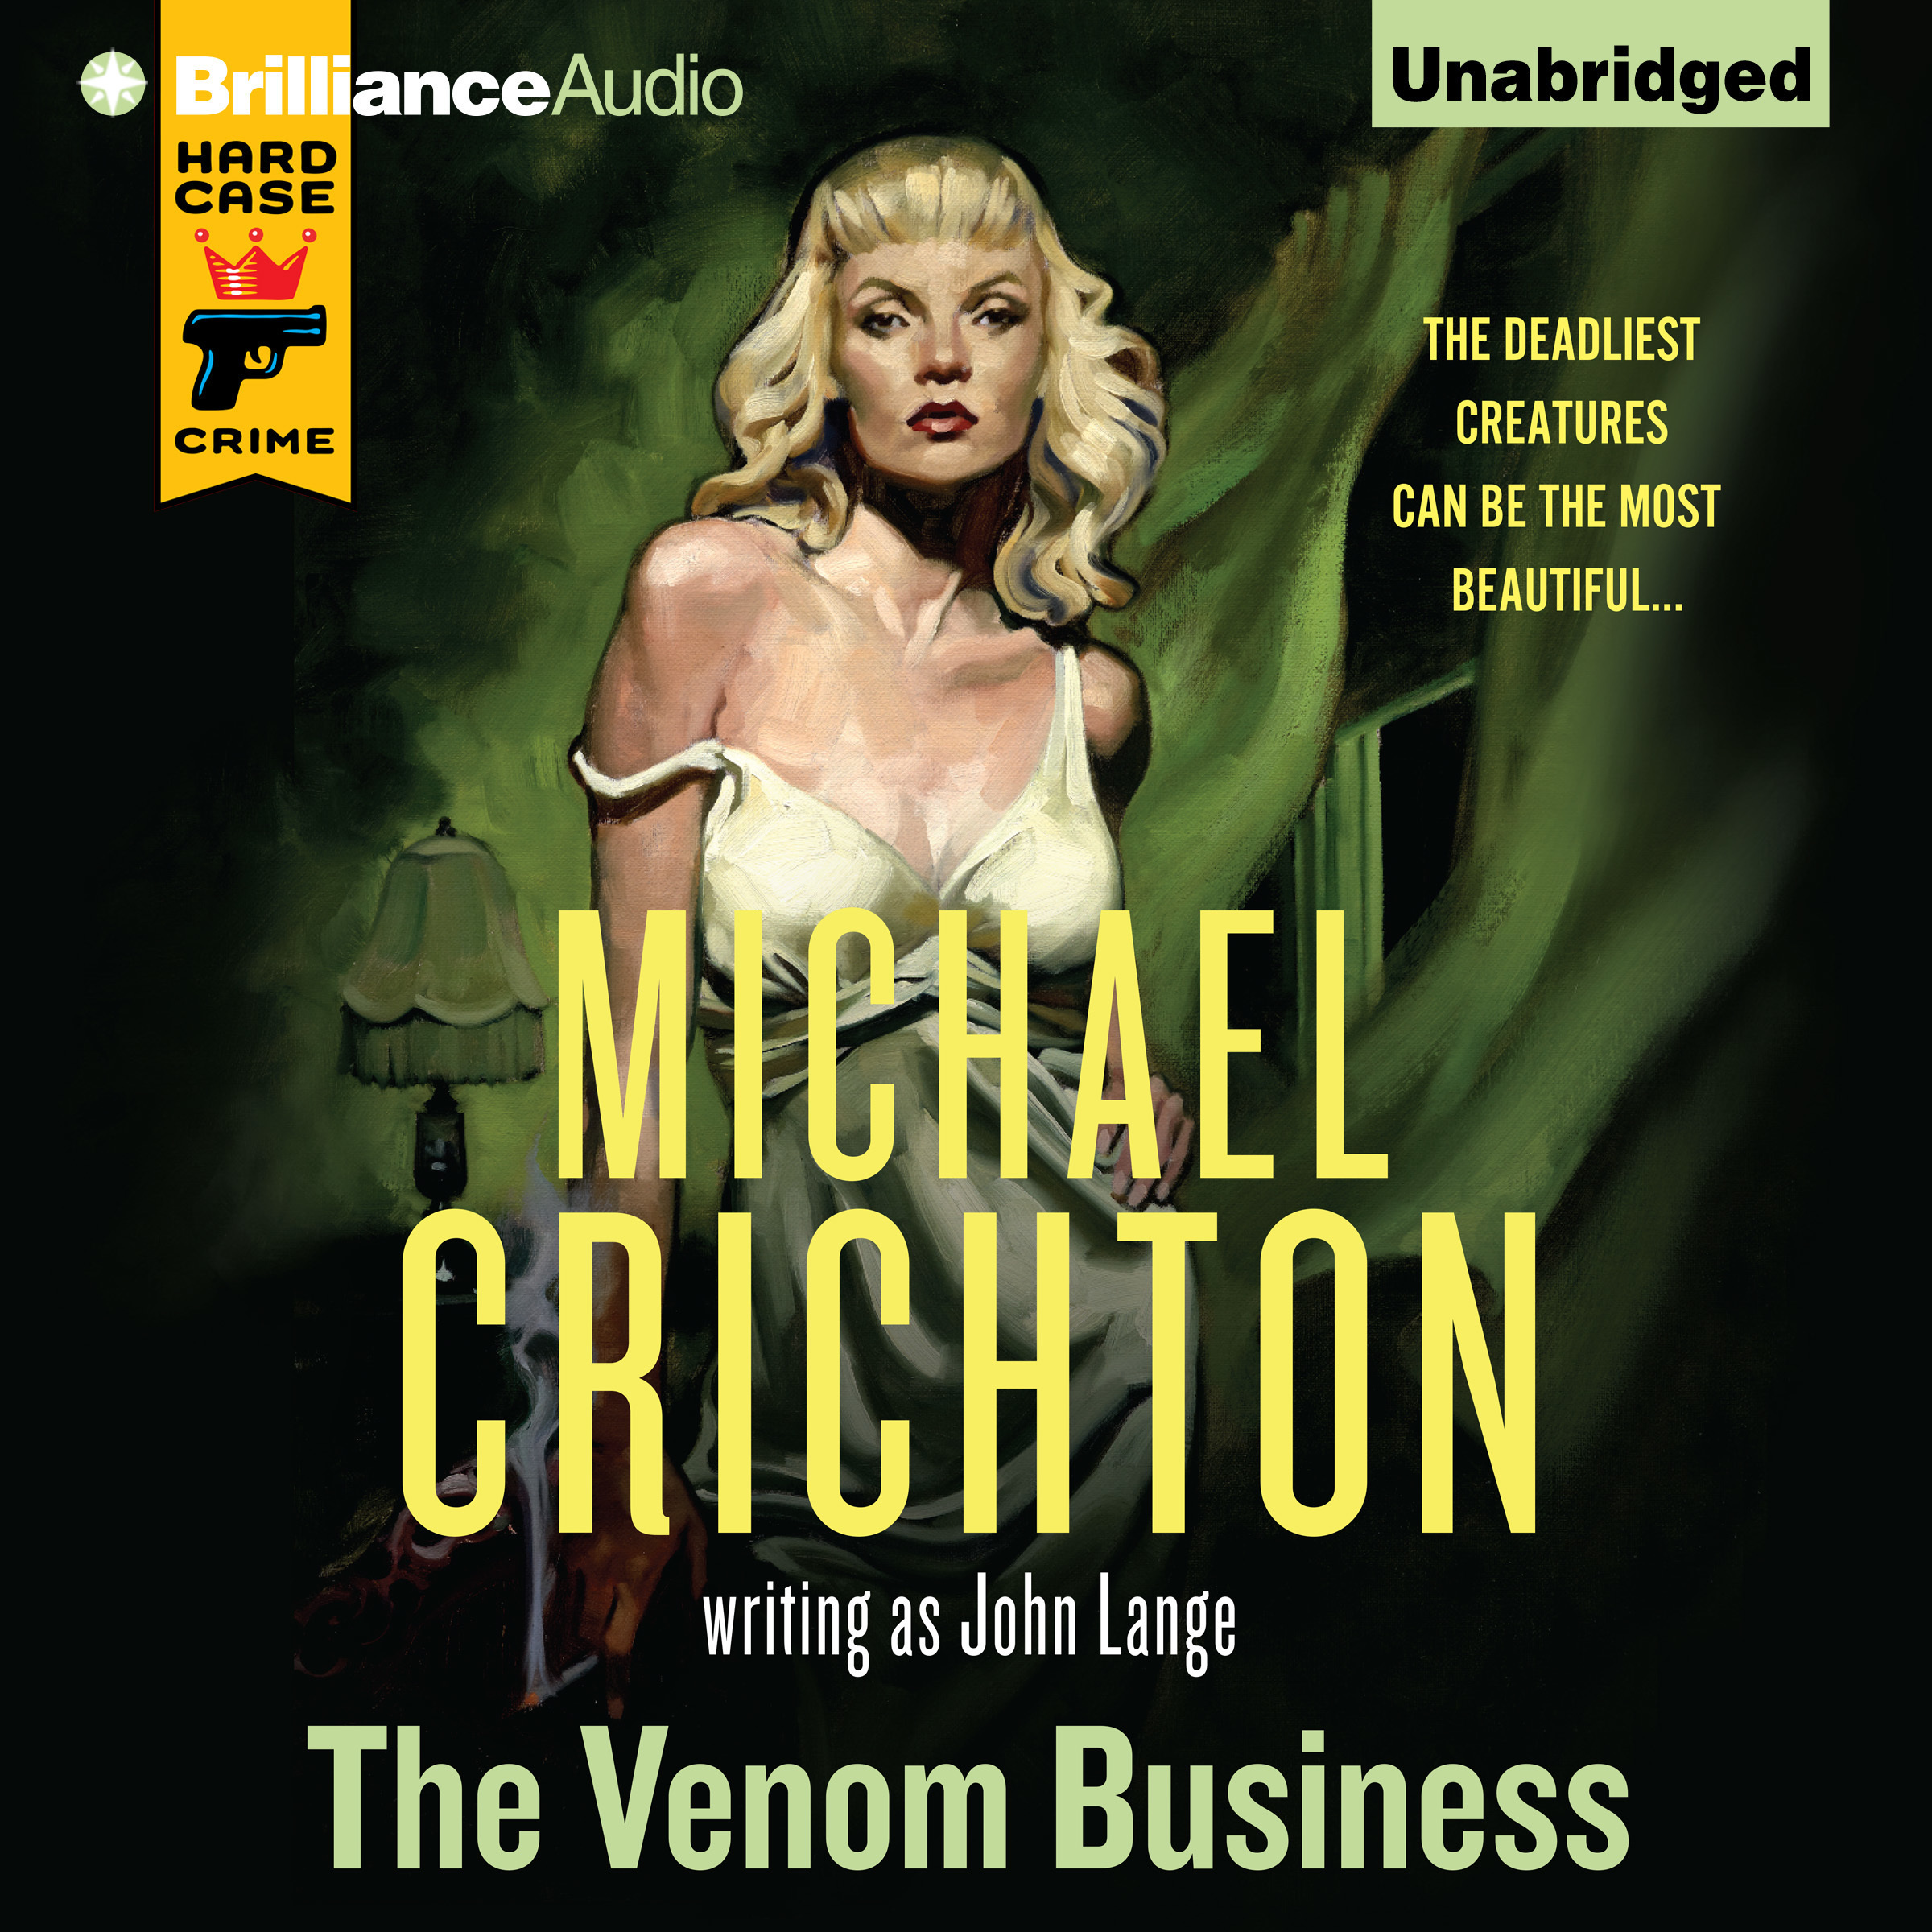 The Venom Business  Audiobook Listen Instantly!